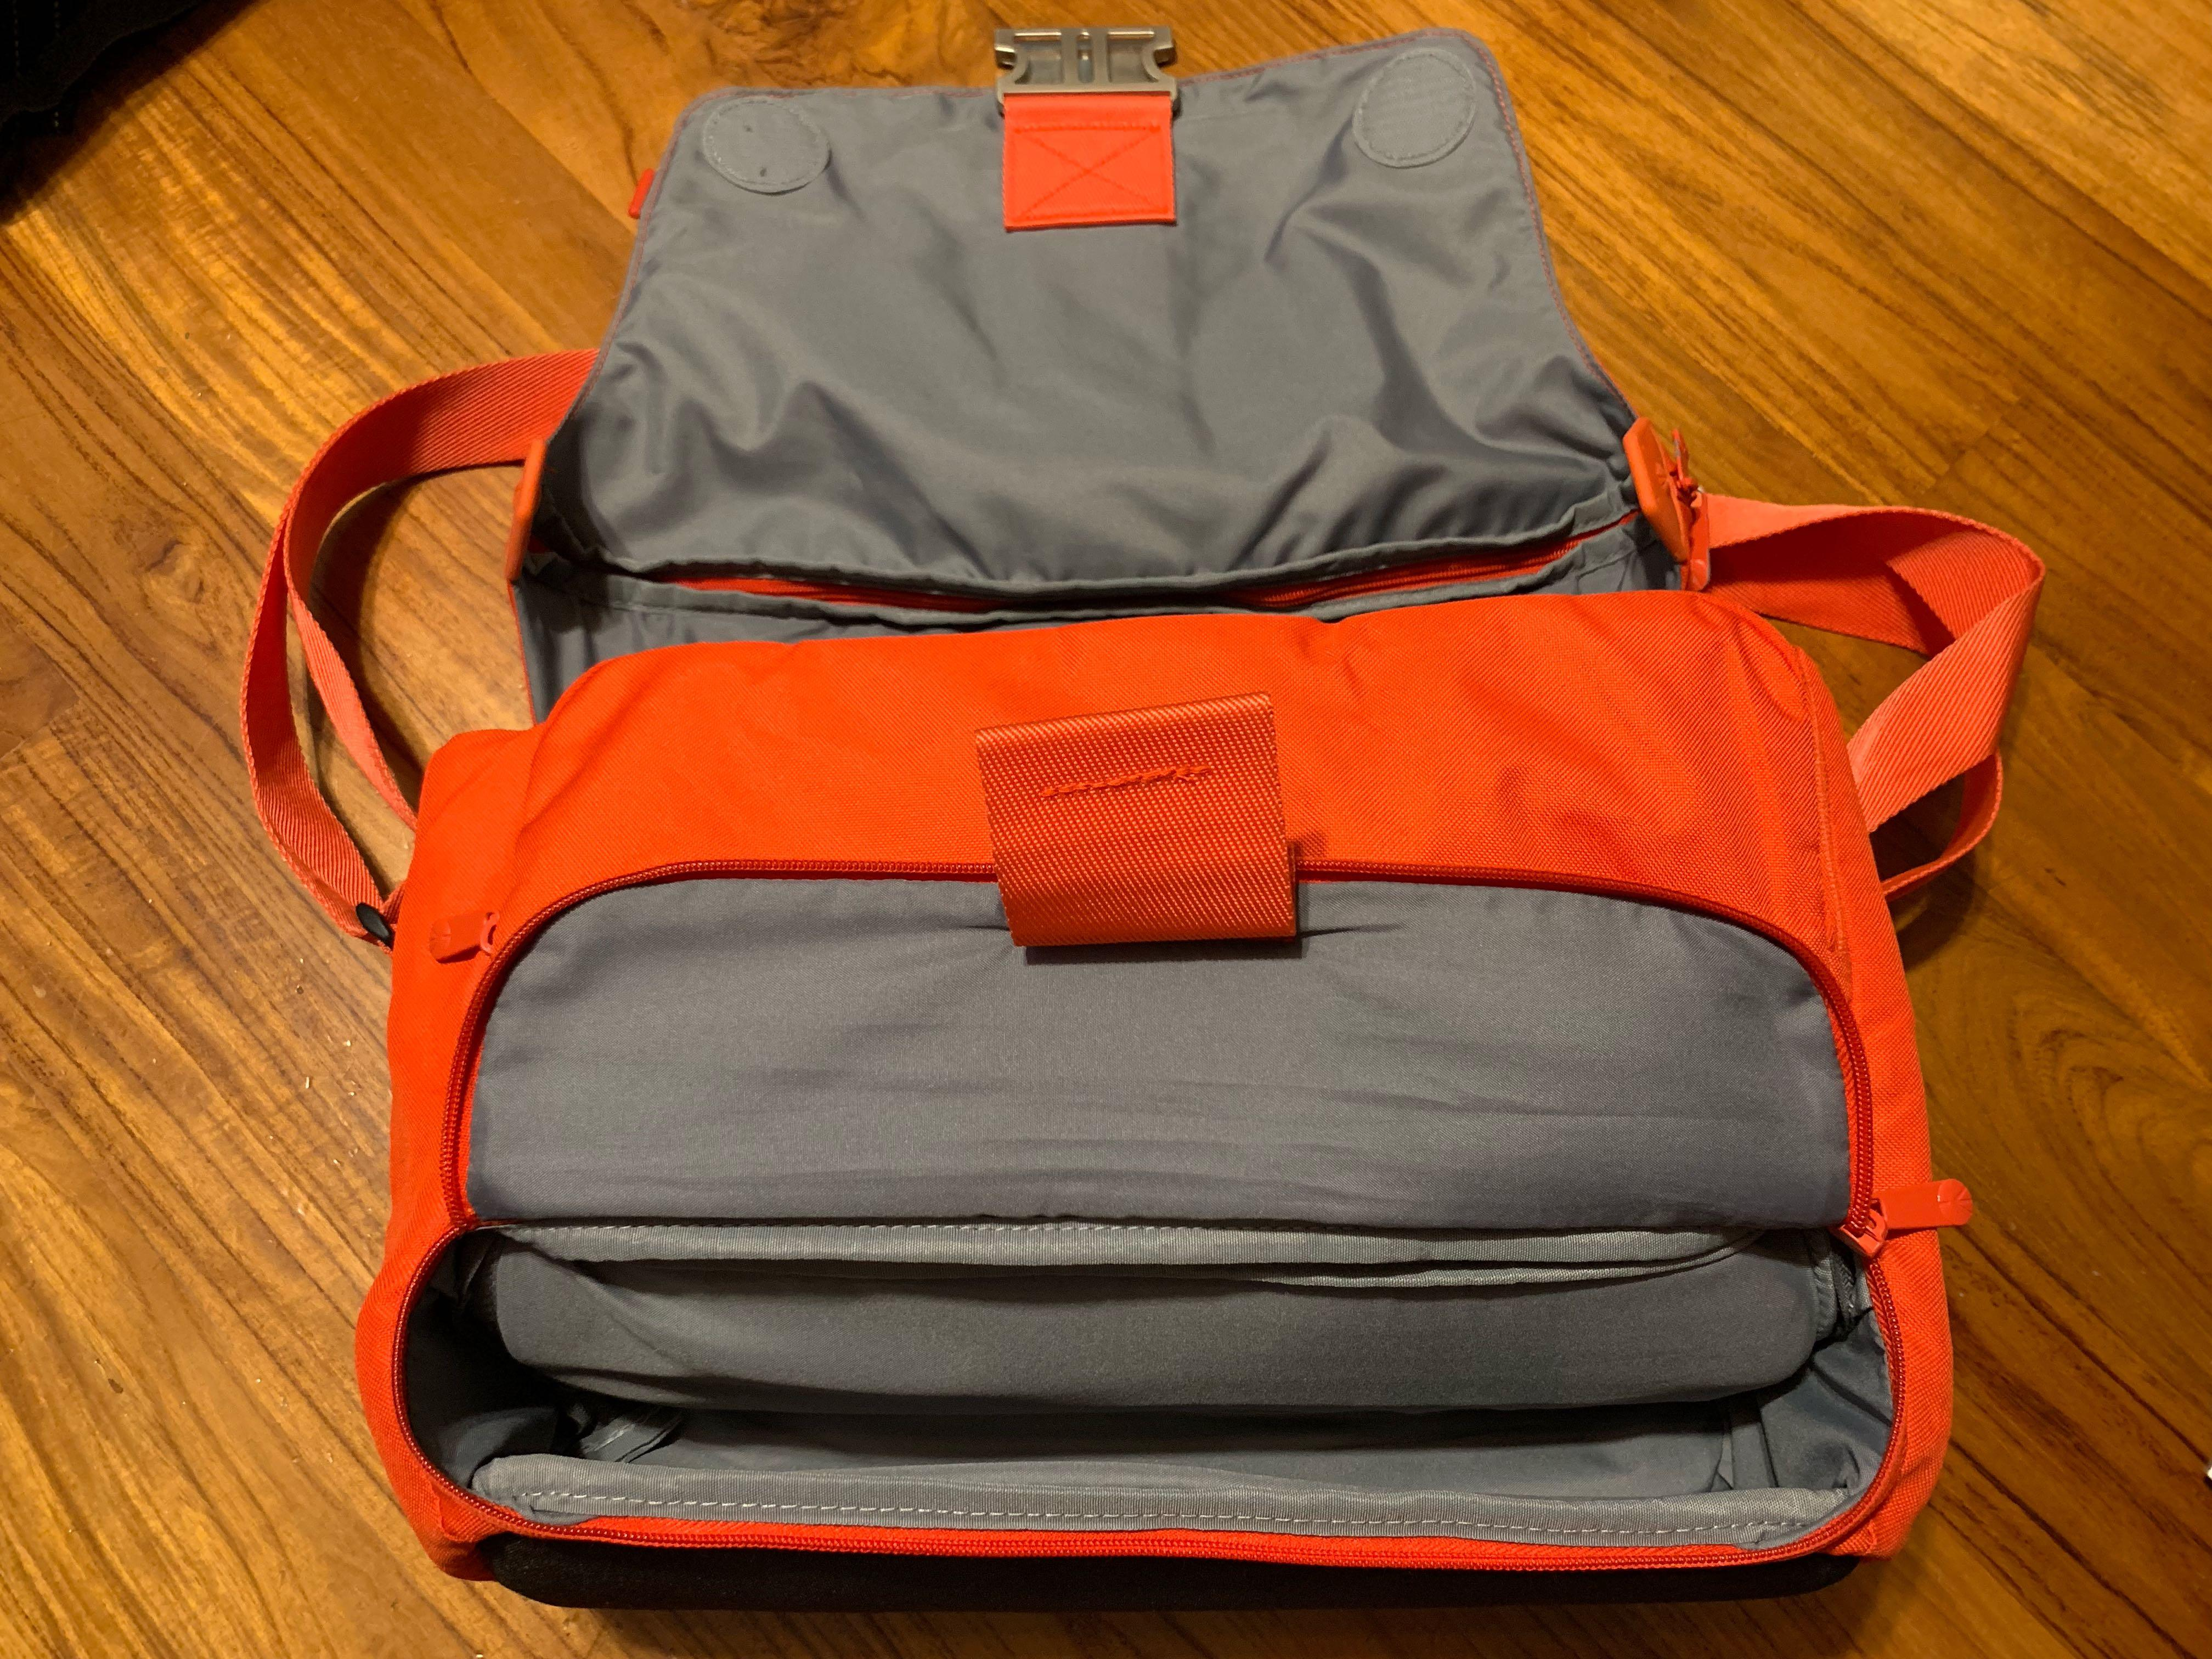 Manfrotto Launches Limited Edition Unica Camera Bag